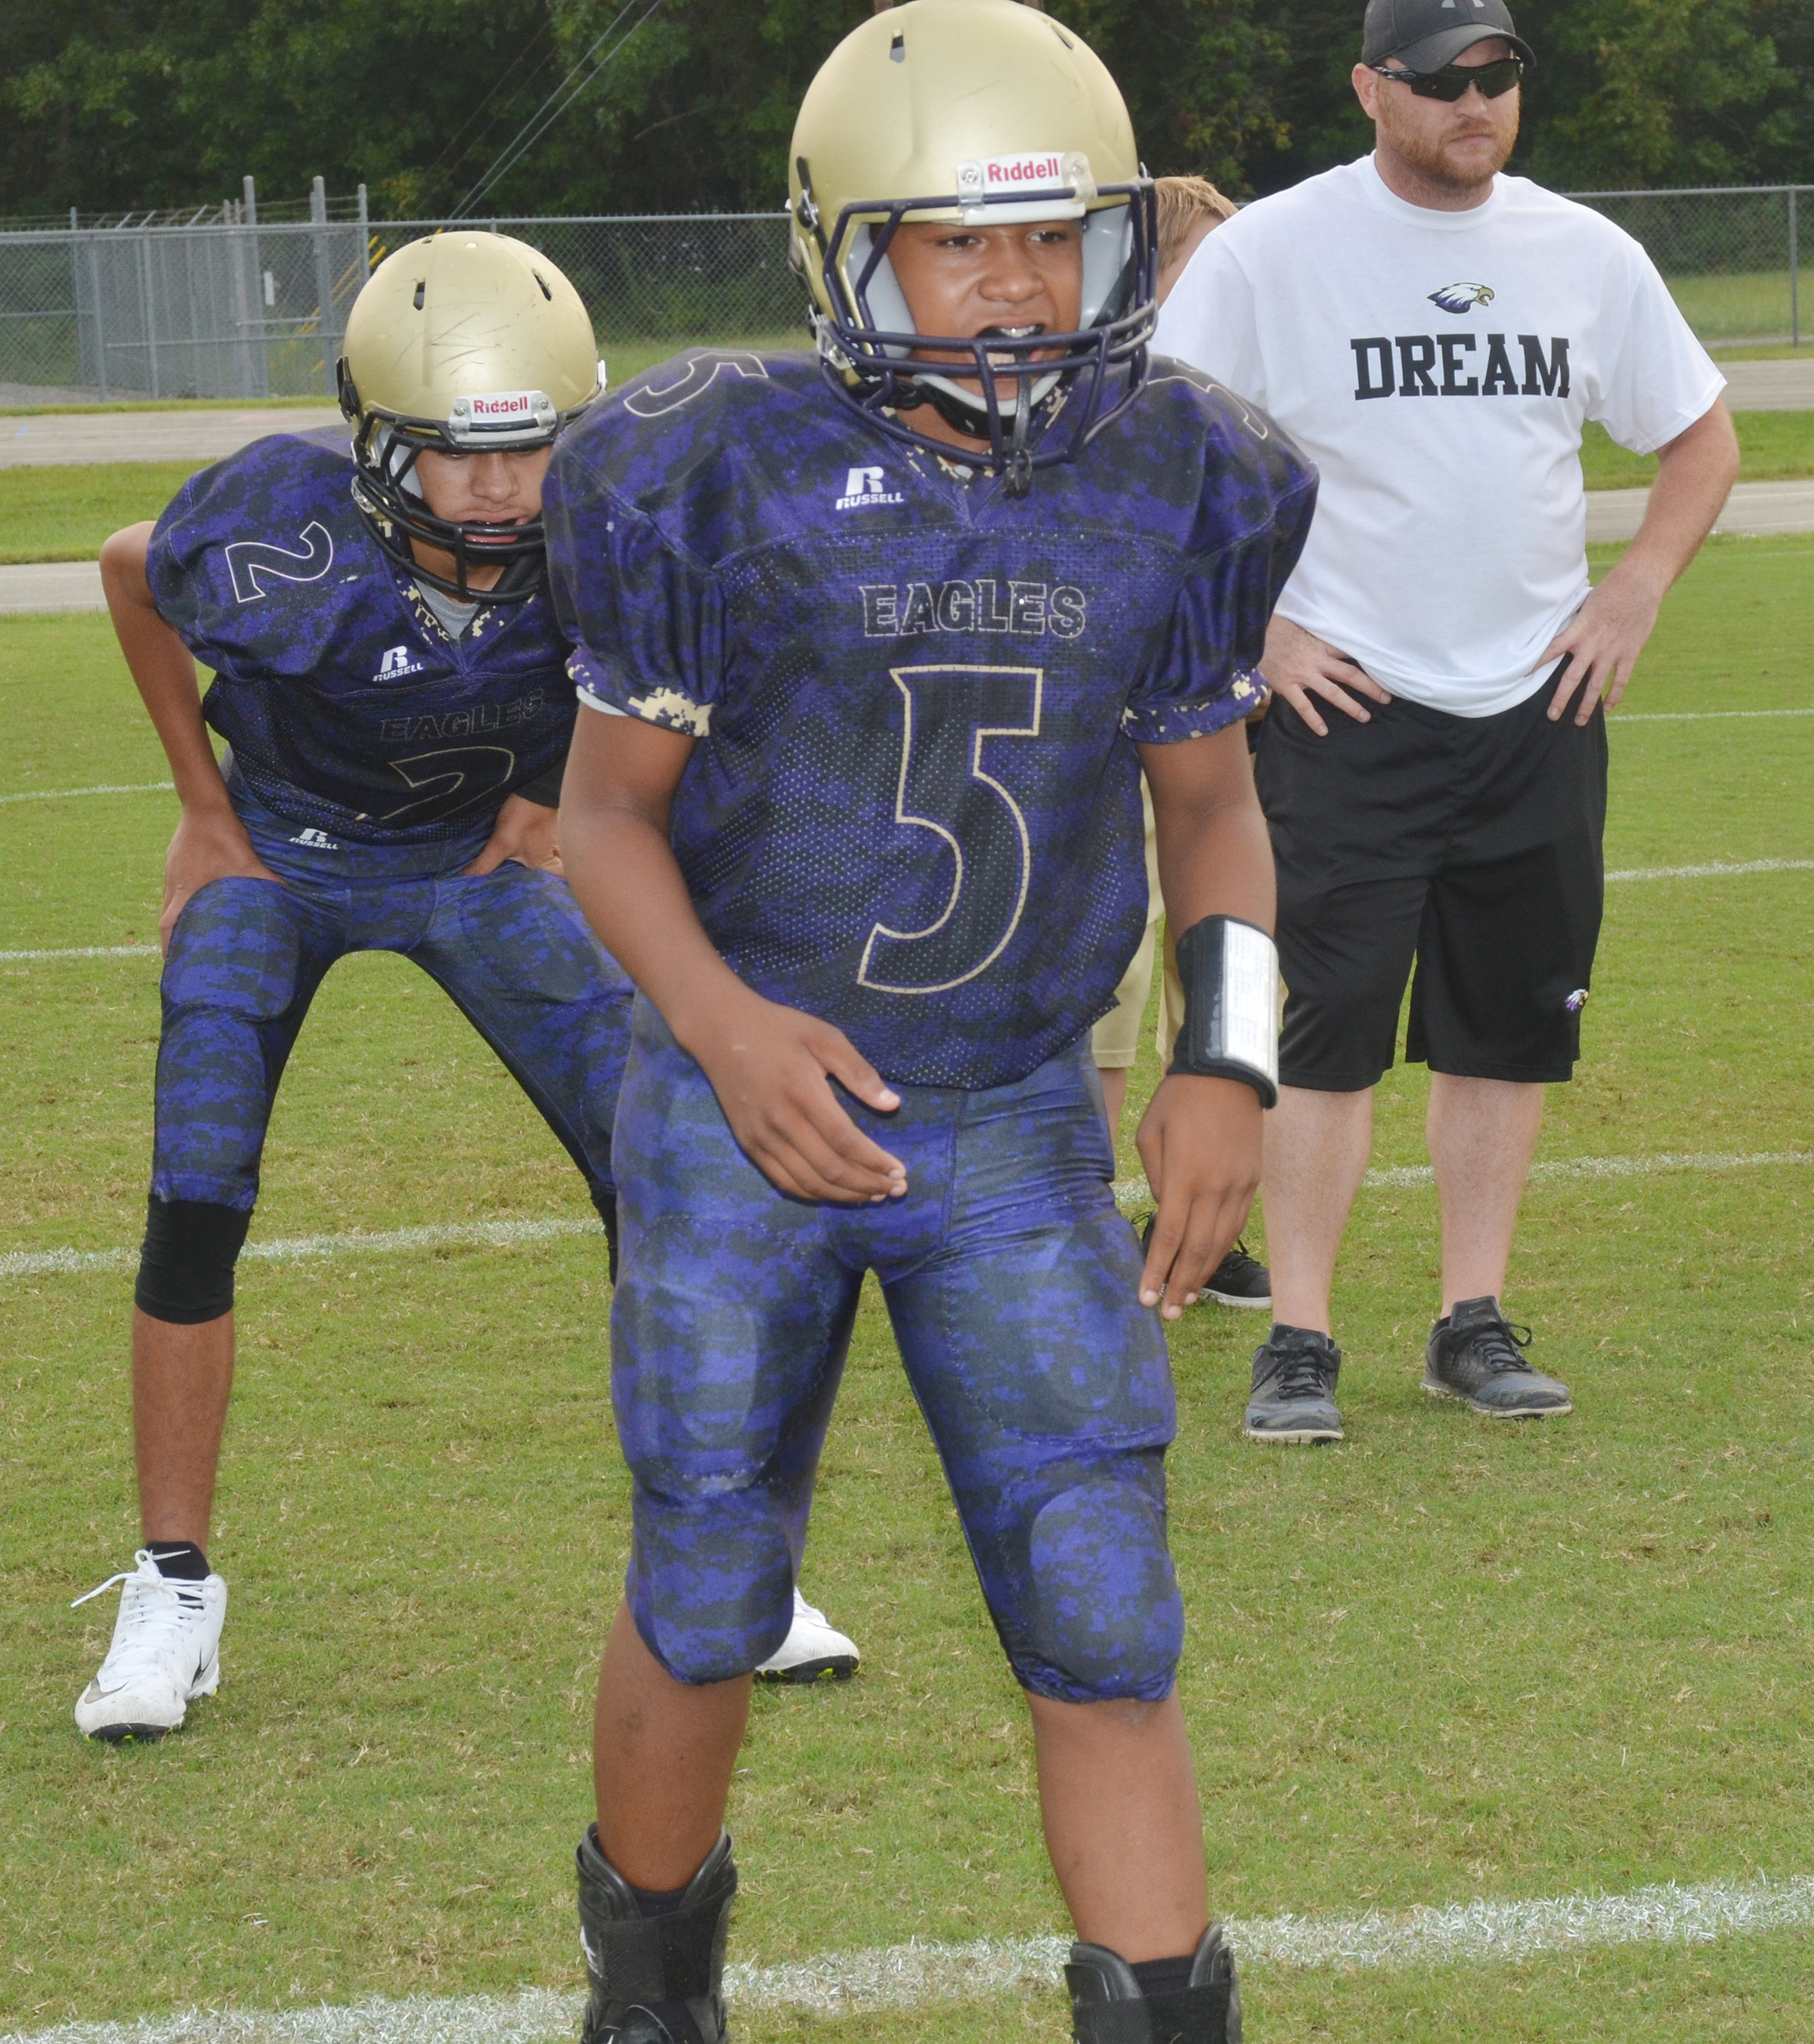 CMS seventh-grader Deondre Weathers practices a play before the game.